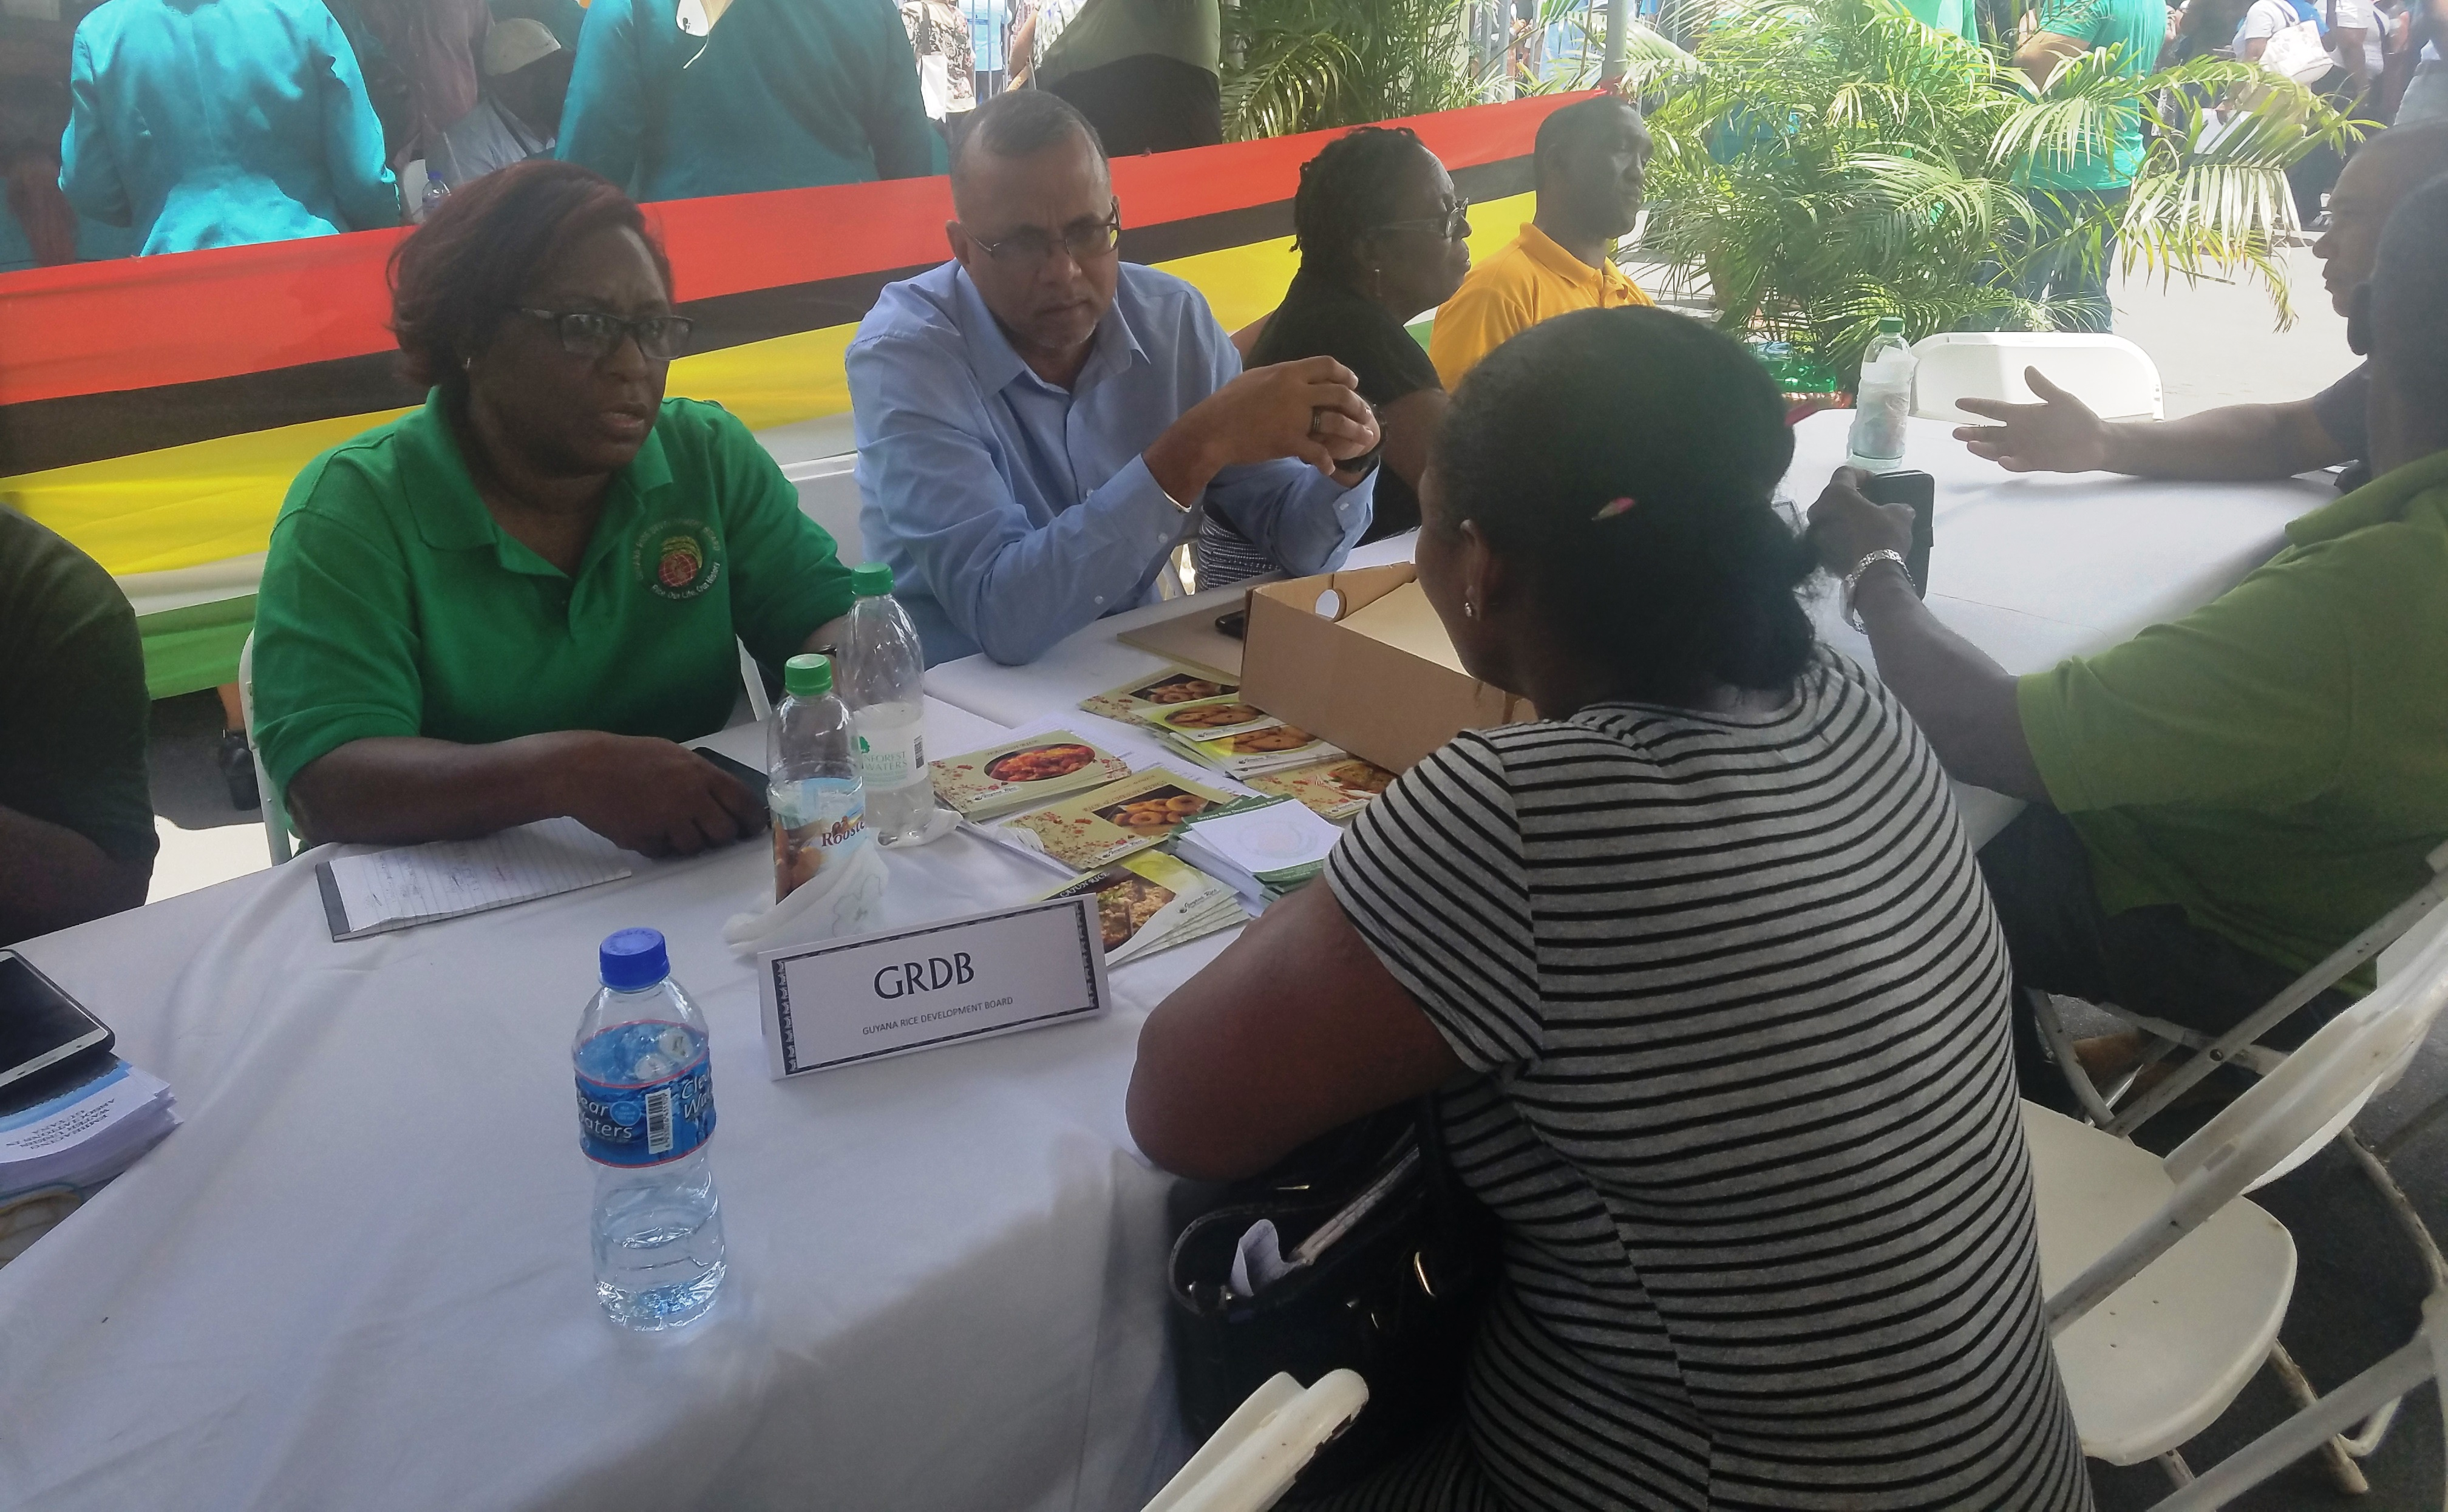 Officials from the Guyana Rice Development Board while engaging persons who visited the booth